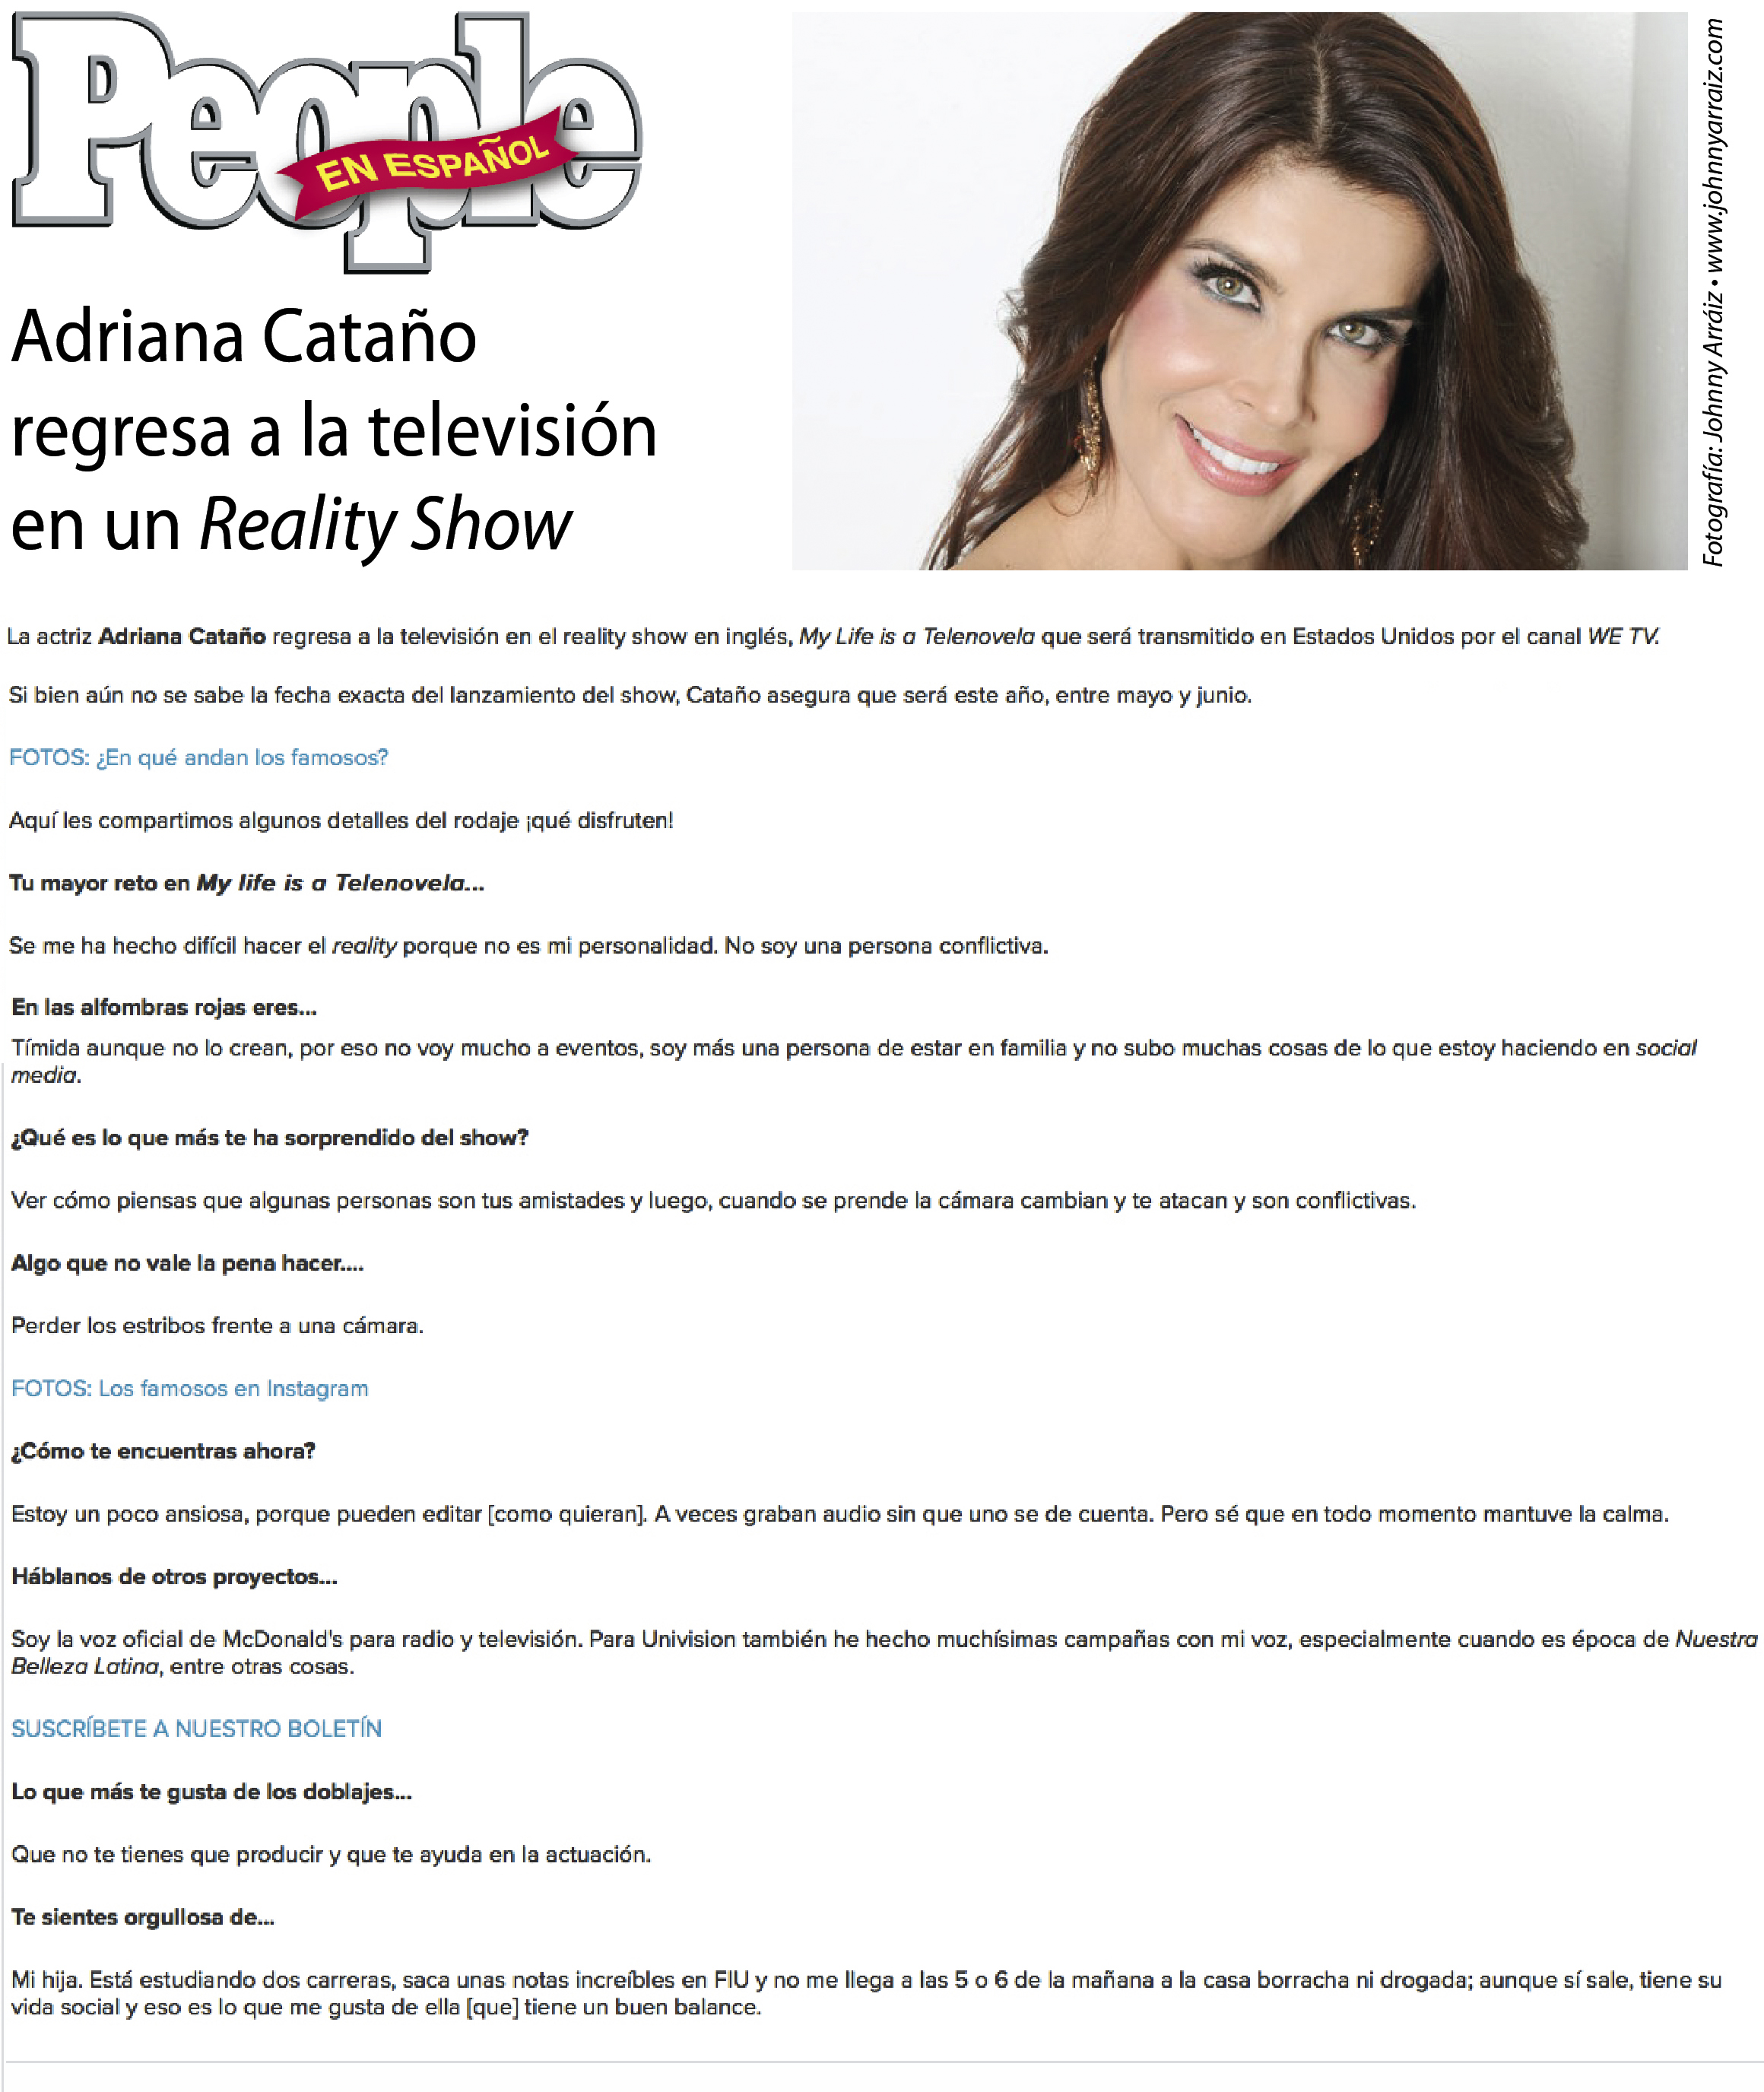 Entrervista Adriana Catano People